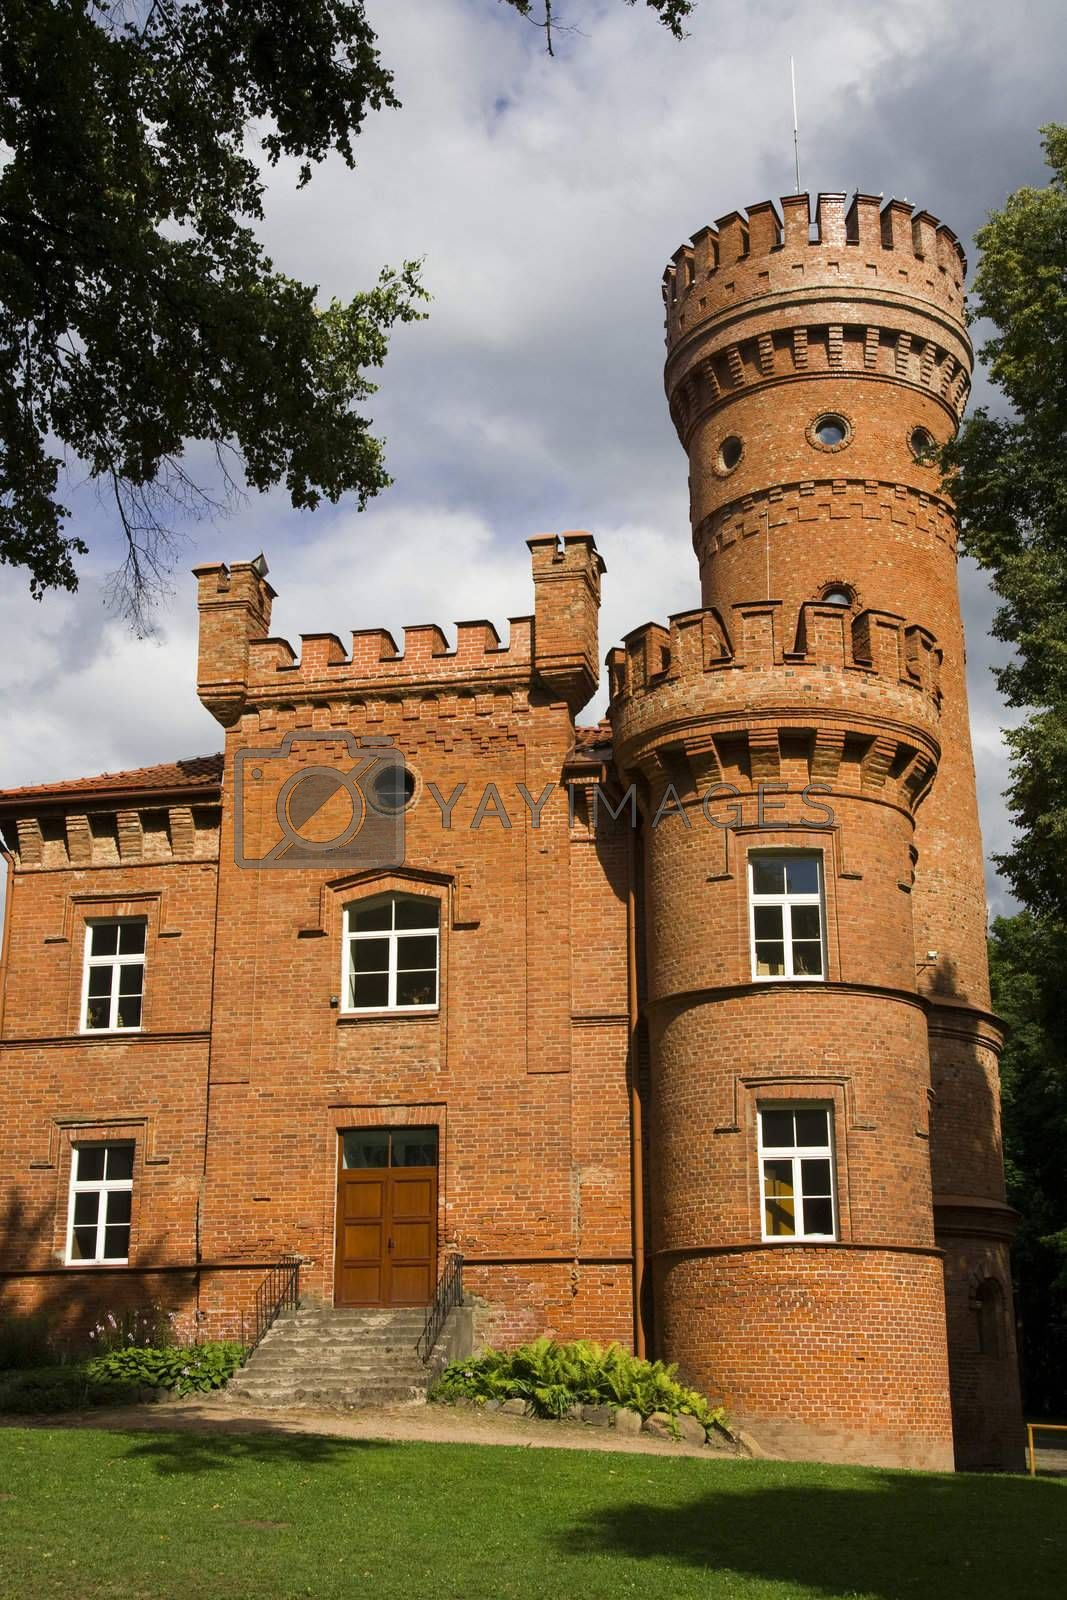 Castle Raudone - the picture was taken in Lithuania